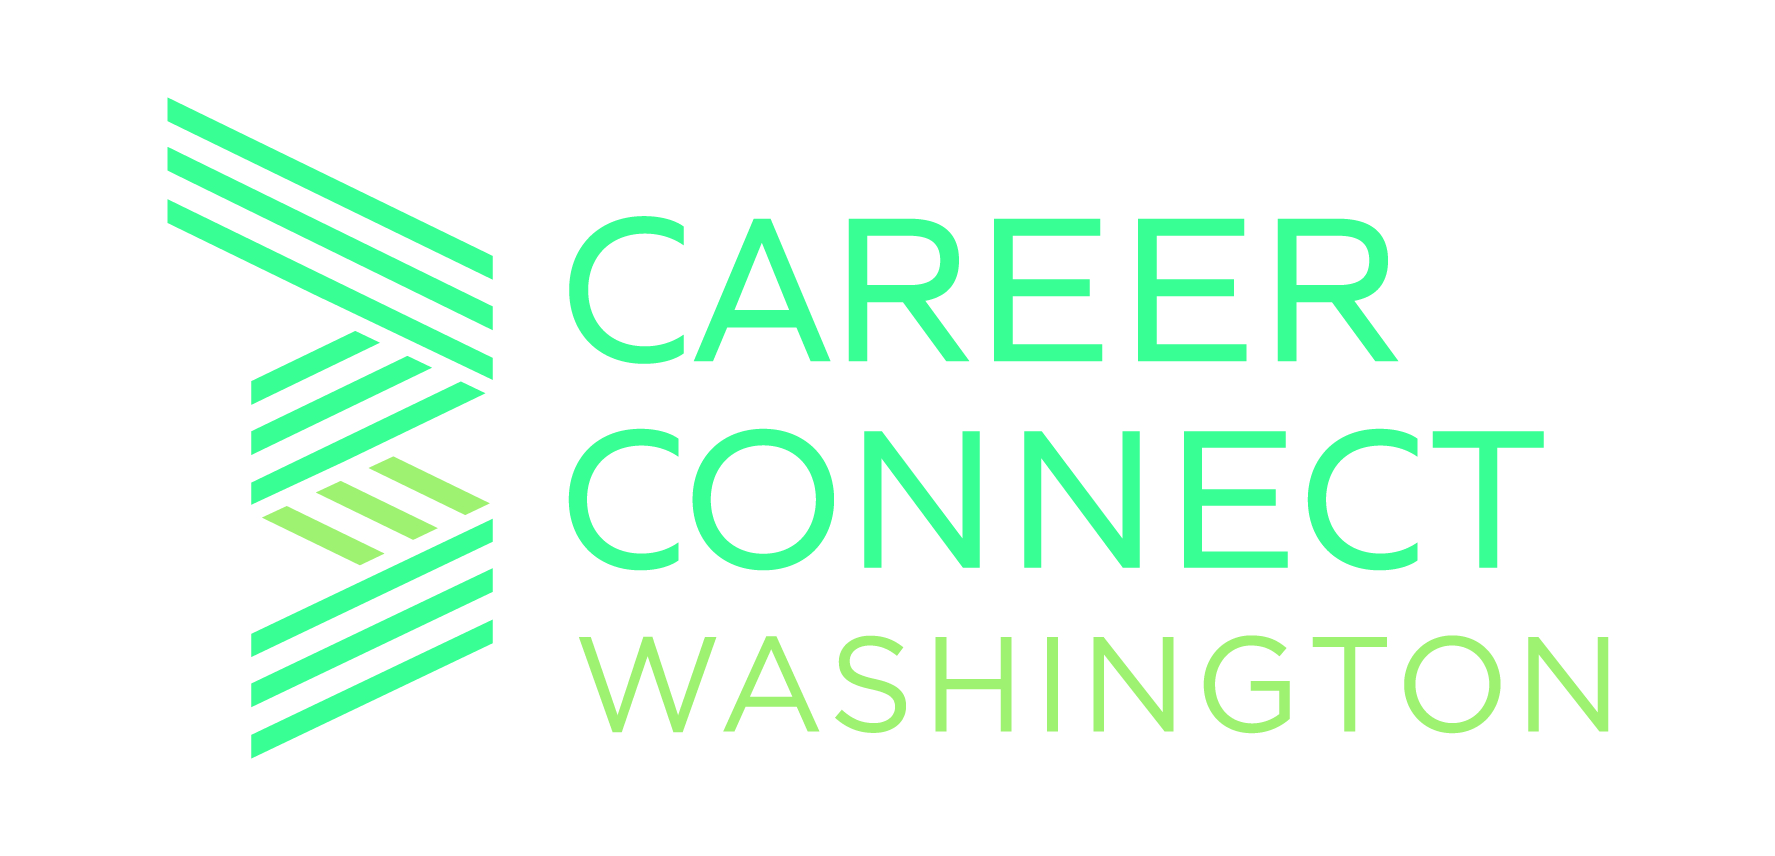 Career Connected Learning